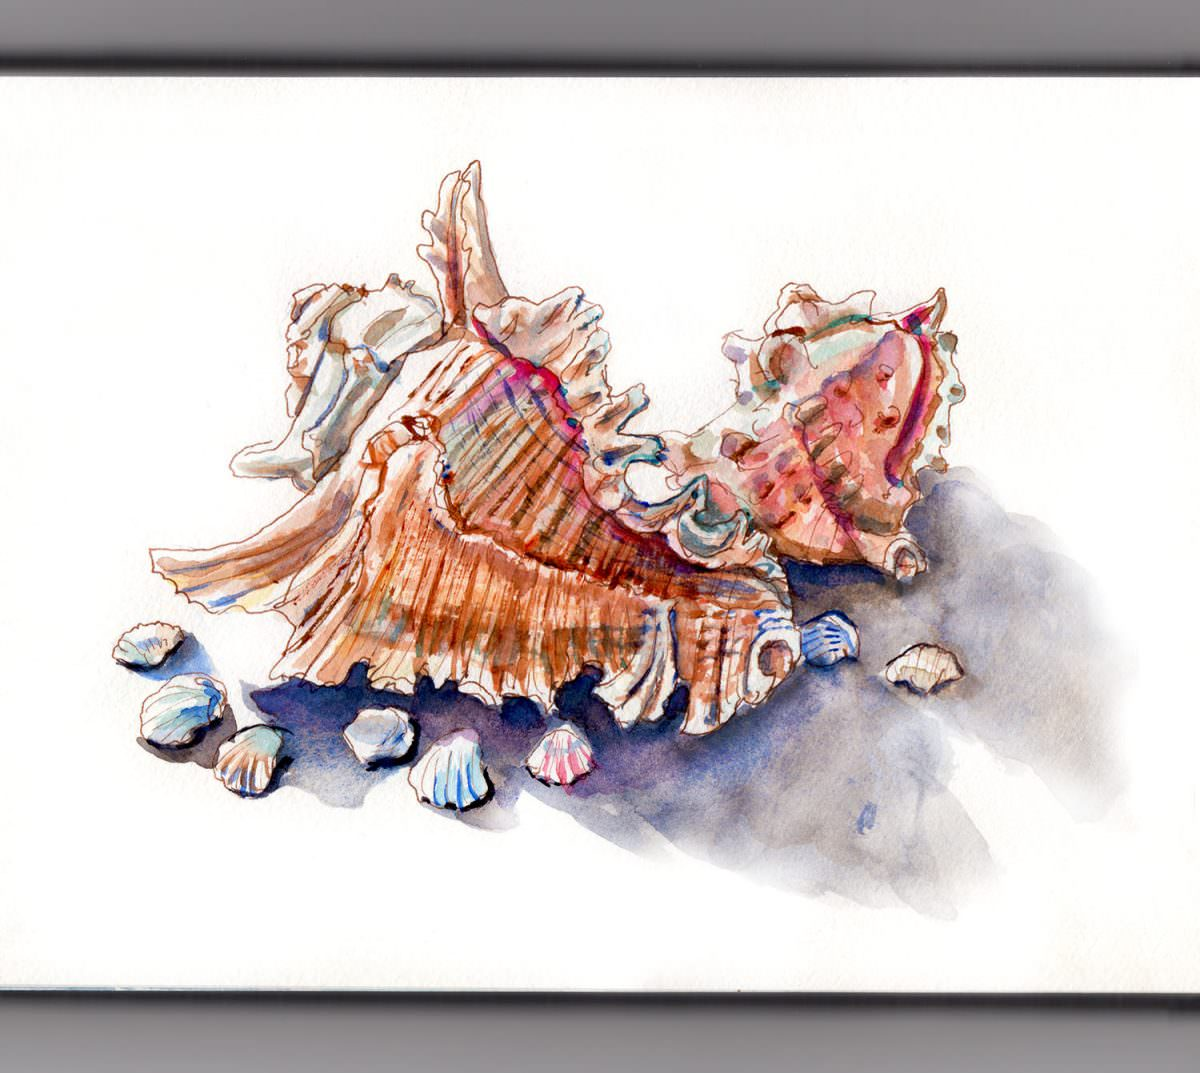 #WorldWatercolorGroup - Day 27 - Collecting Sea Shells - Doodlewash